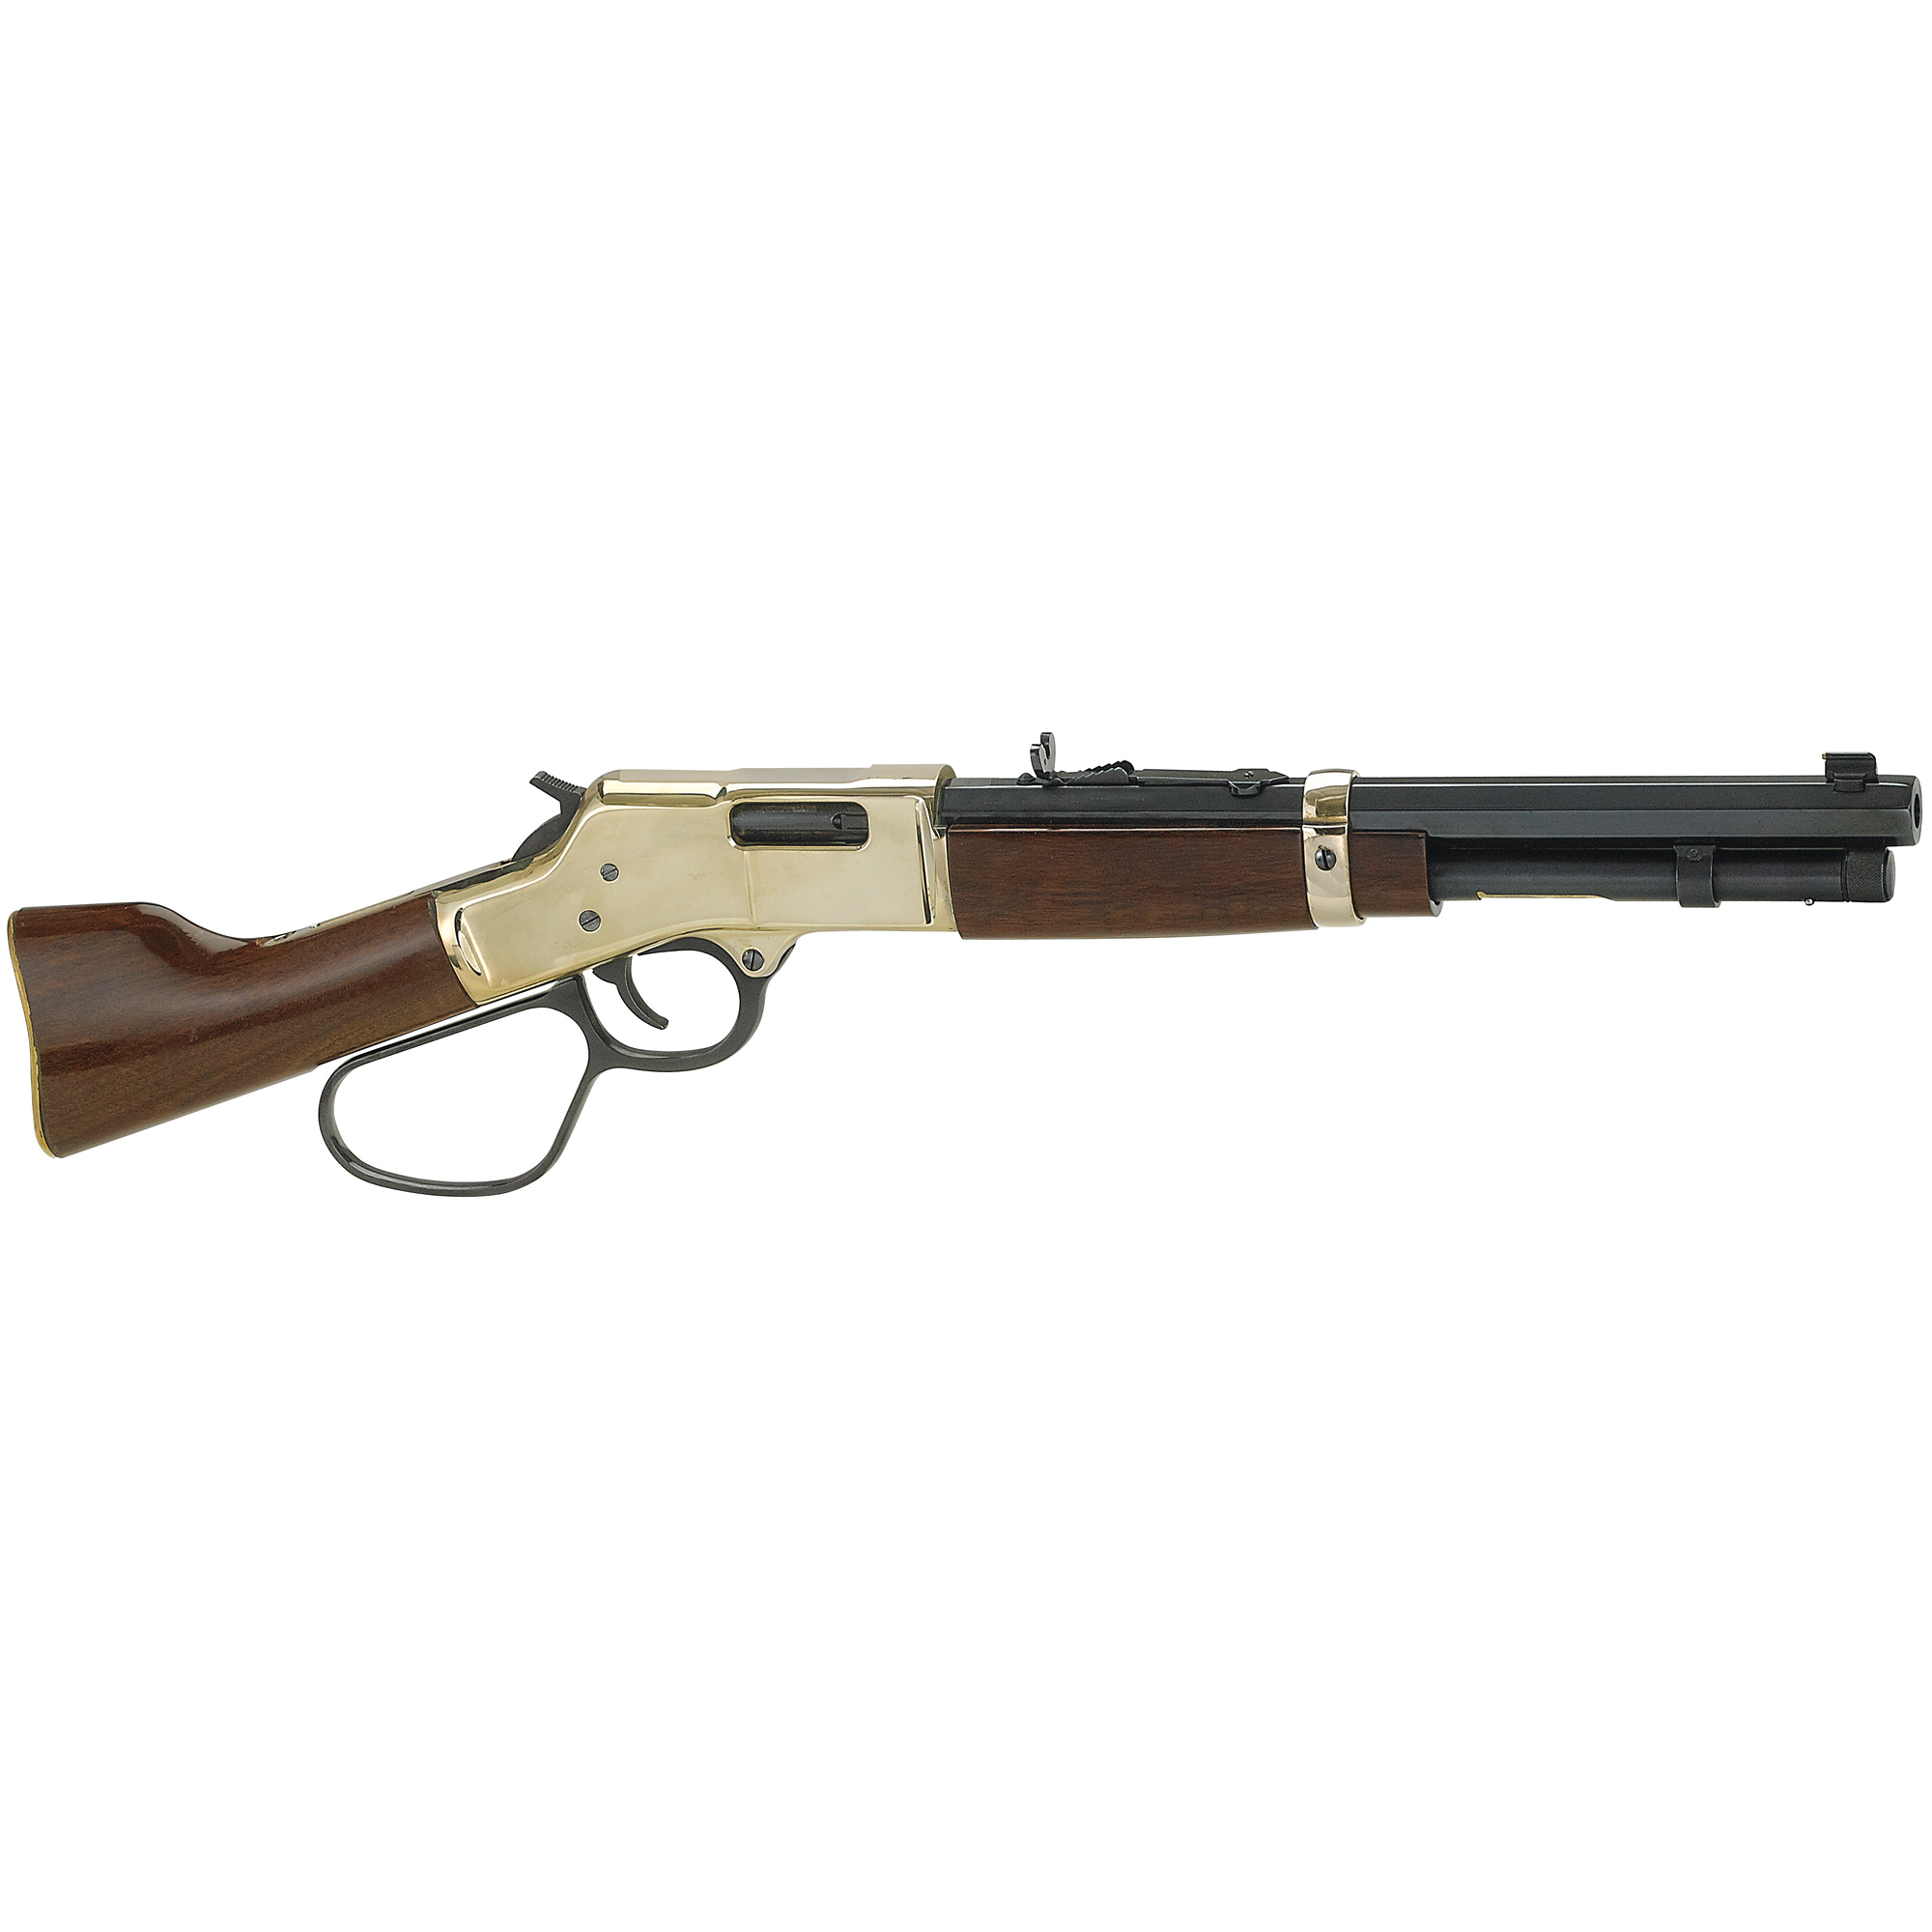 """This Henry Mare's Leg is a cut-down"""" modified variation of the model H006 Big Boy. The large loop lever"""" coupled with the legendary crisp Henry action"""" makes it easy for you to enjoy those rapid-fire repeating shots Steve McQueen used to take down the bad guys."""